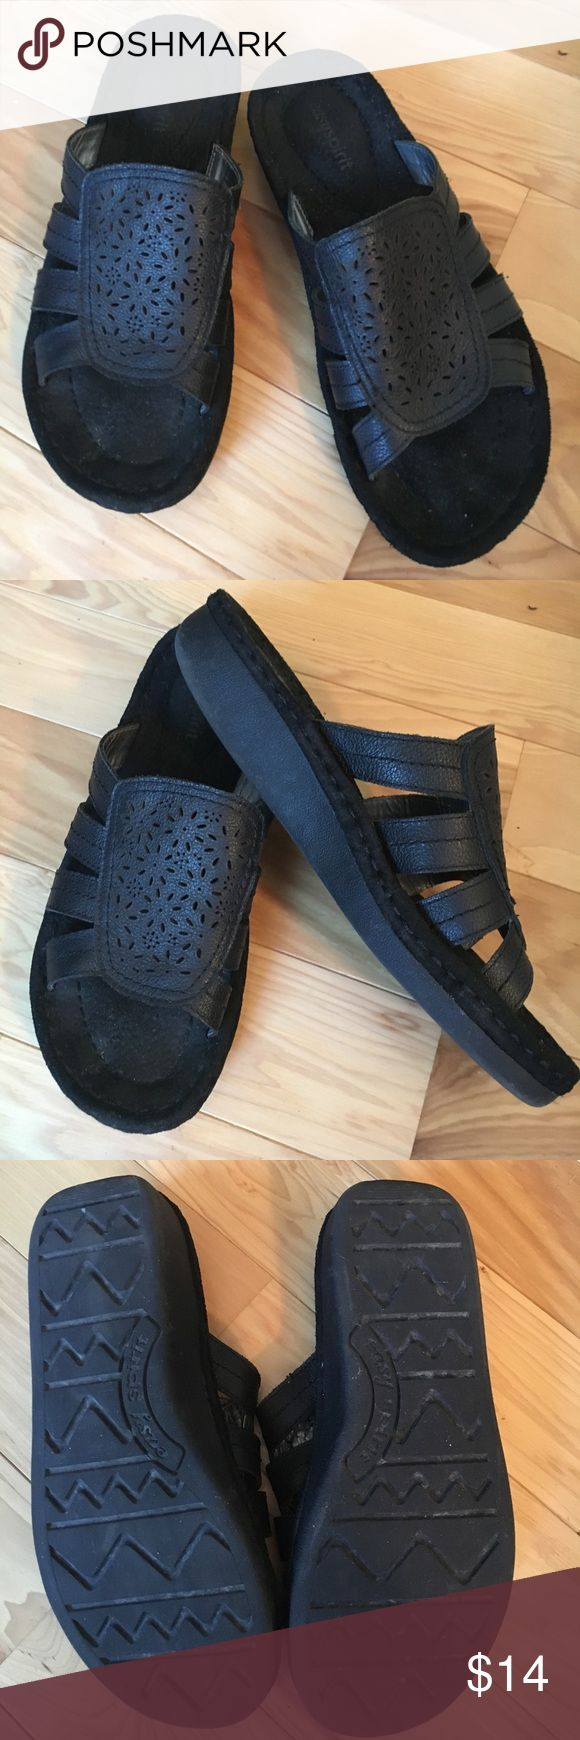 Easy Spirit Dreamflowwm Black leather sandal 9M Easy Spirit Dreamflowwm Black Sandal. 9M. Leather upper and lining.   Lightly used. No visible signs of wear except slight toe impression. Excellent condition. Easy Spirit Shoes Sandals